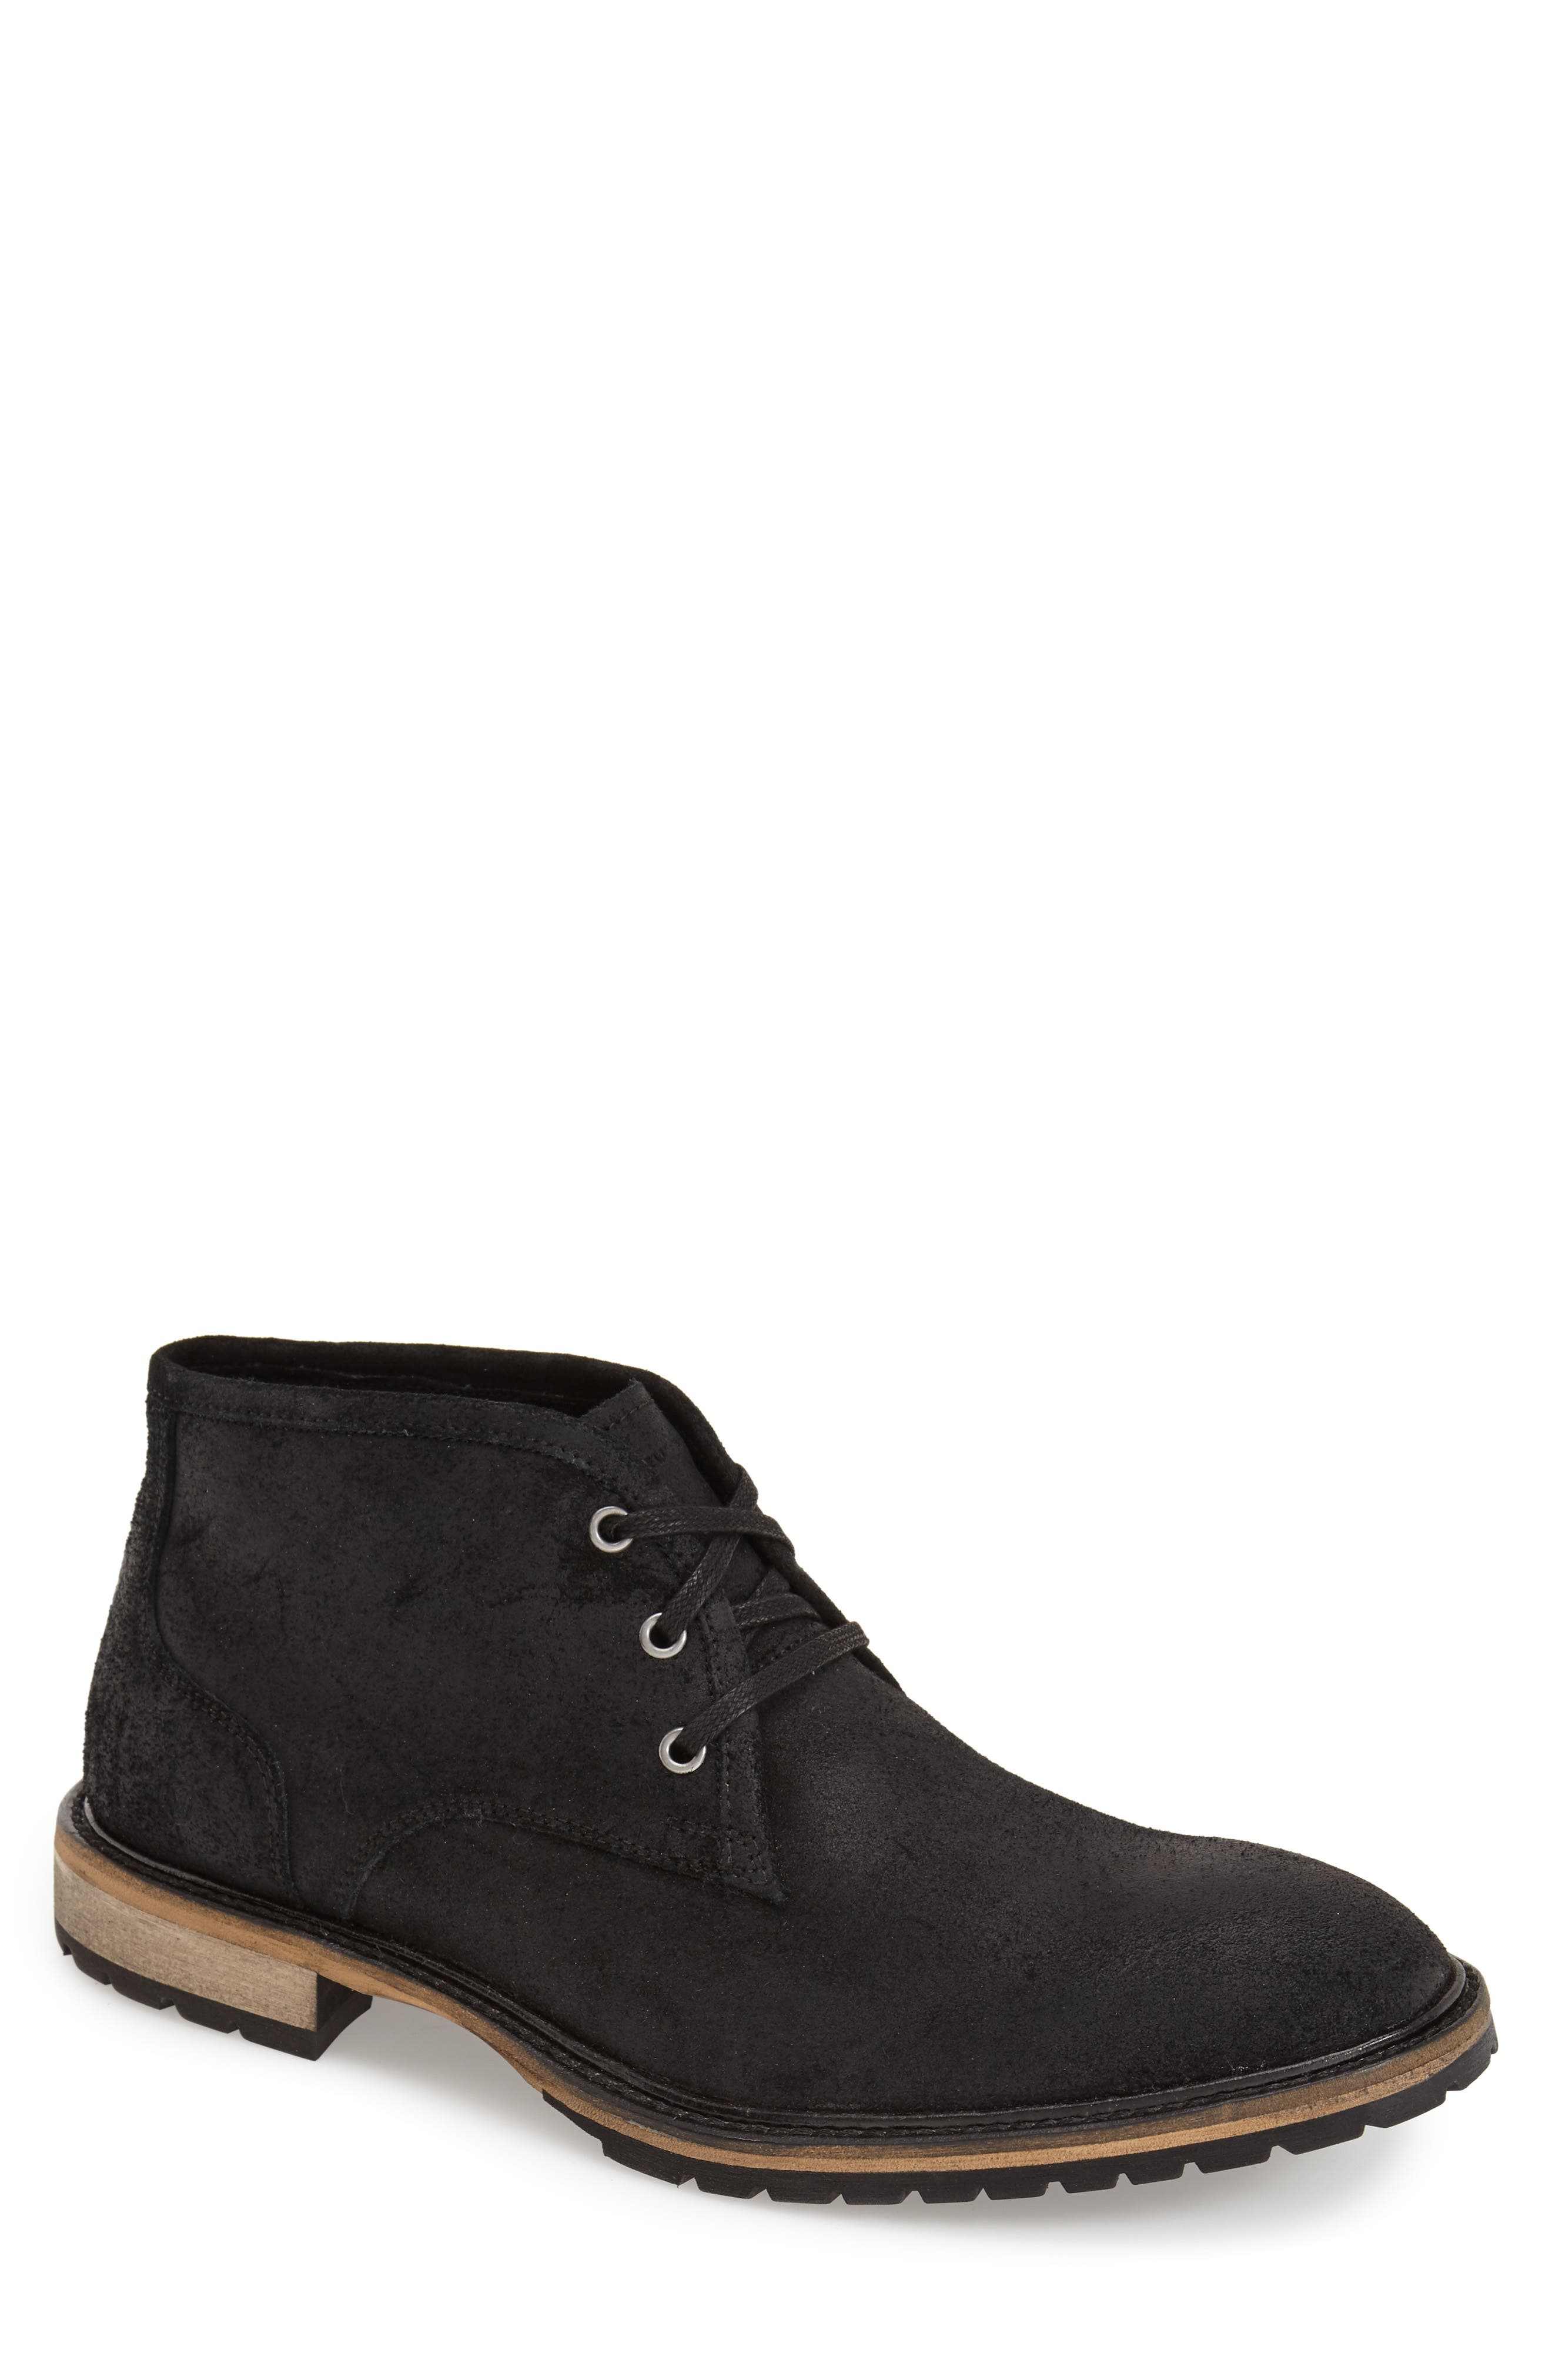 Woodside Chukka Boot,                             Alternate thumbnail 4, color,                             BLACK/ DEEP NATURAL SUEDE